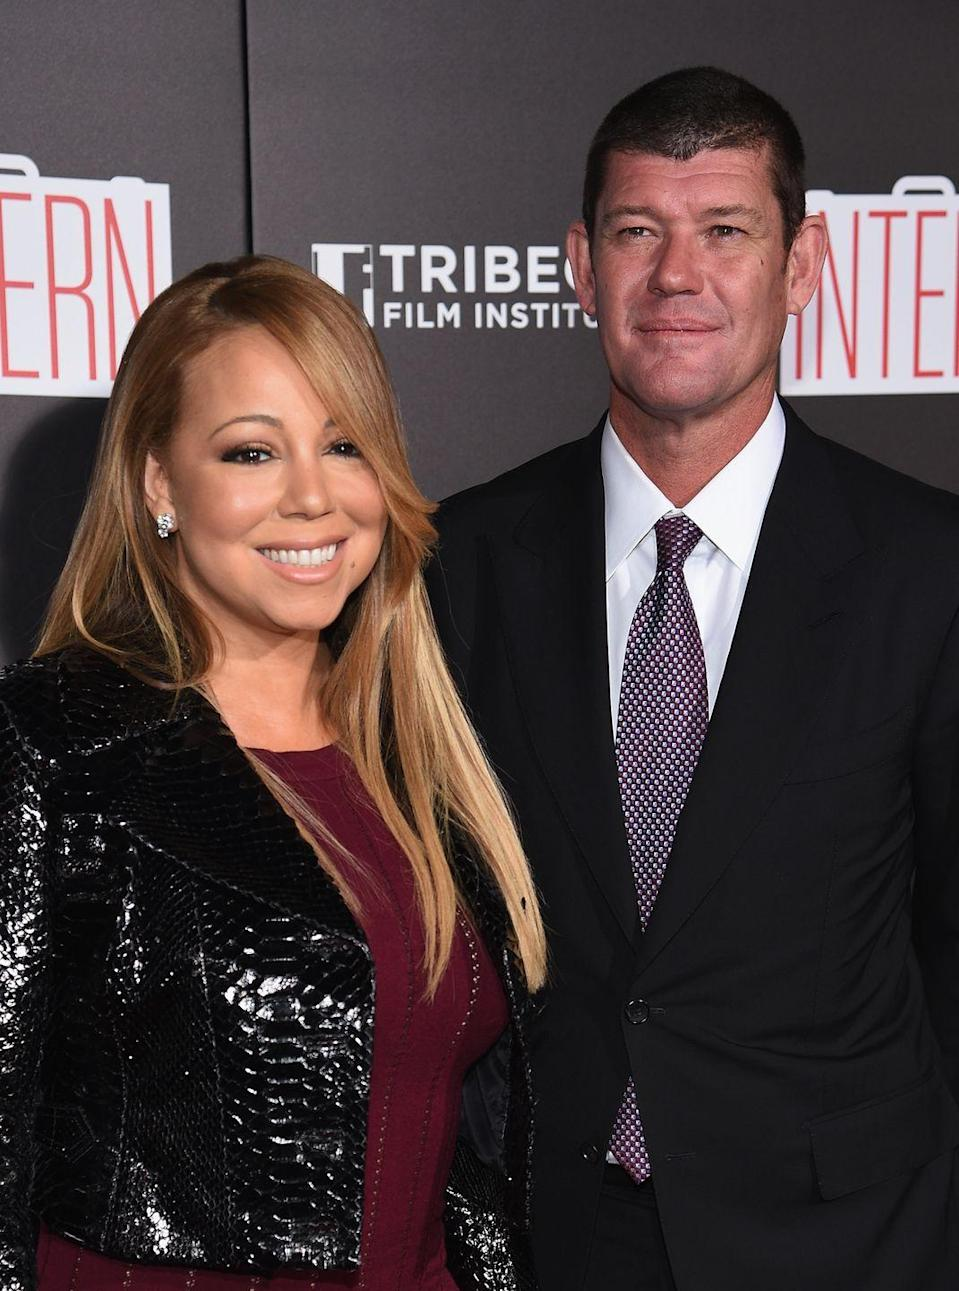 """<p>The singer and casino mogul announced they were engaged in January 2010 only to <a href=""""http://www.usmagazine.com/celebrity-news/news/james-packer-dumped-mariah-carey-while-making-wedding-plans-w447899"""" rel=""""nofollow noopener"""" target=""""_blank"""" data-ylk=""""slk:call off the wedding"""" class=""""link rapid-noclick-resp"""">call off the wedding</a> in October of the same year.</p>"""